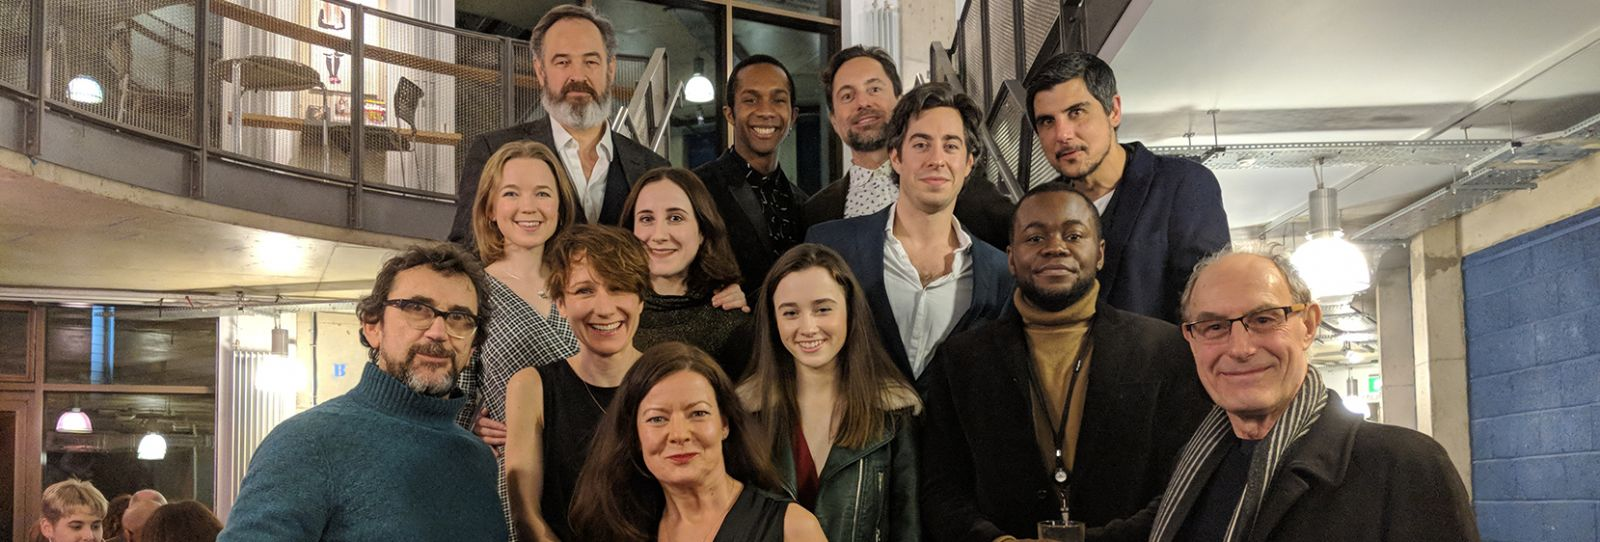 Dr Jekyll & Mr Hyde Press Night